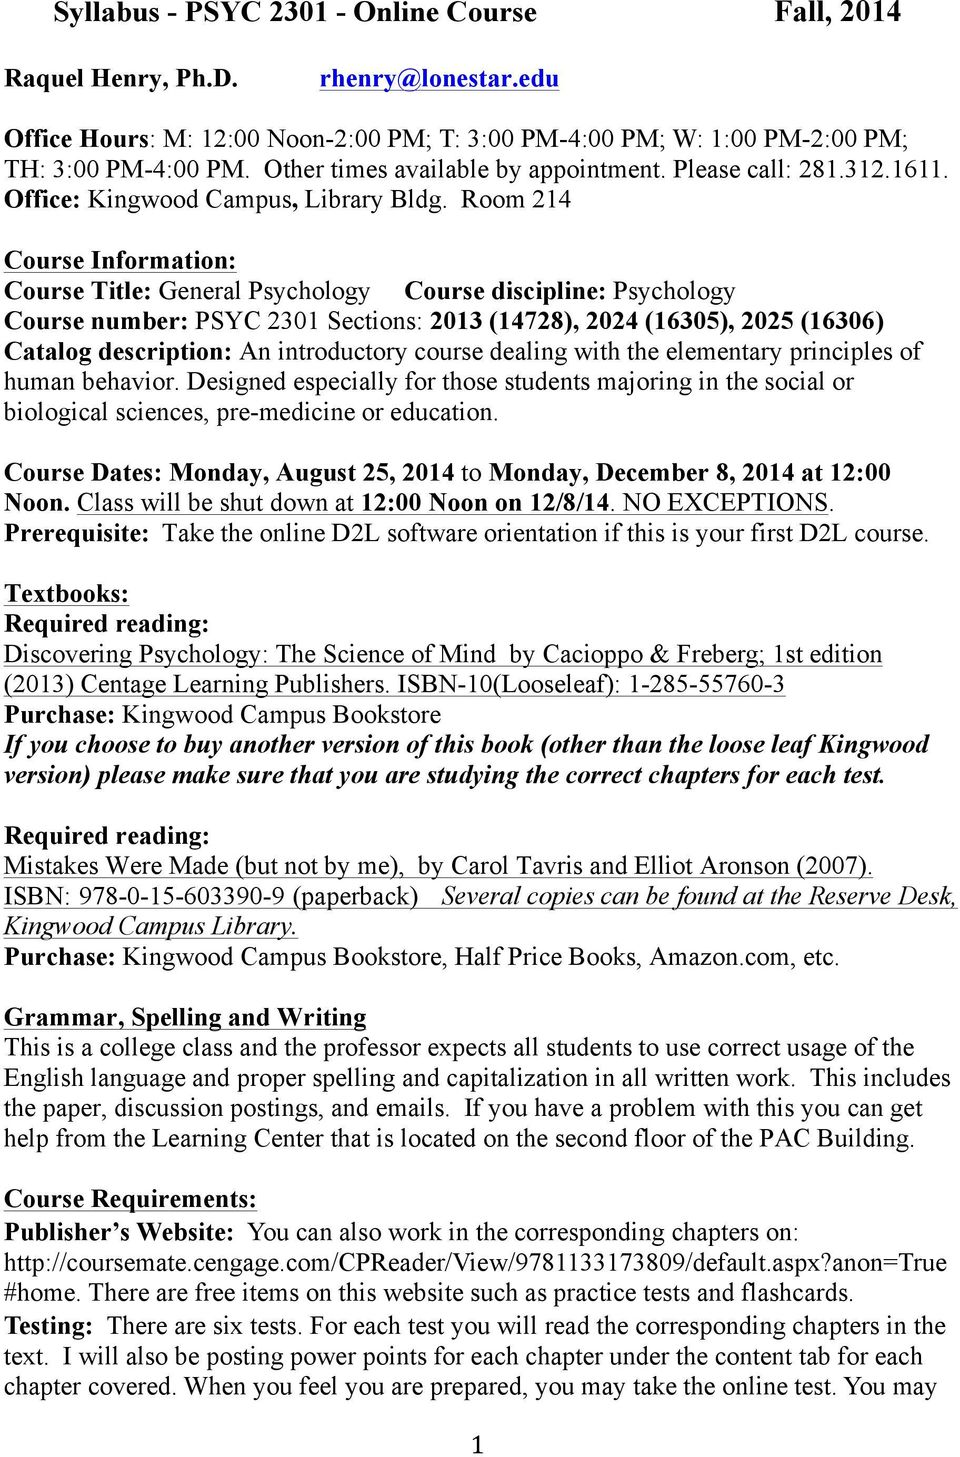 Room 214 Course Information: Course Title: General Psychology Course discipline: Psychology Course number: PSYC 2301 Sections: 2013 (14728), 2024 (16305), 2025 (16306) Catalog description: An